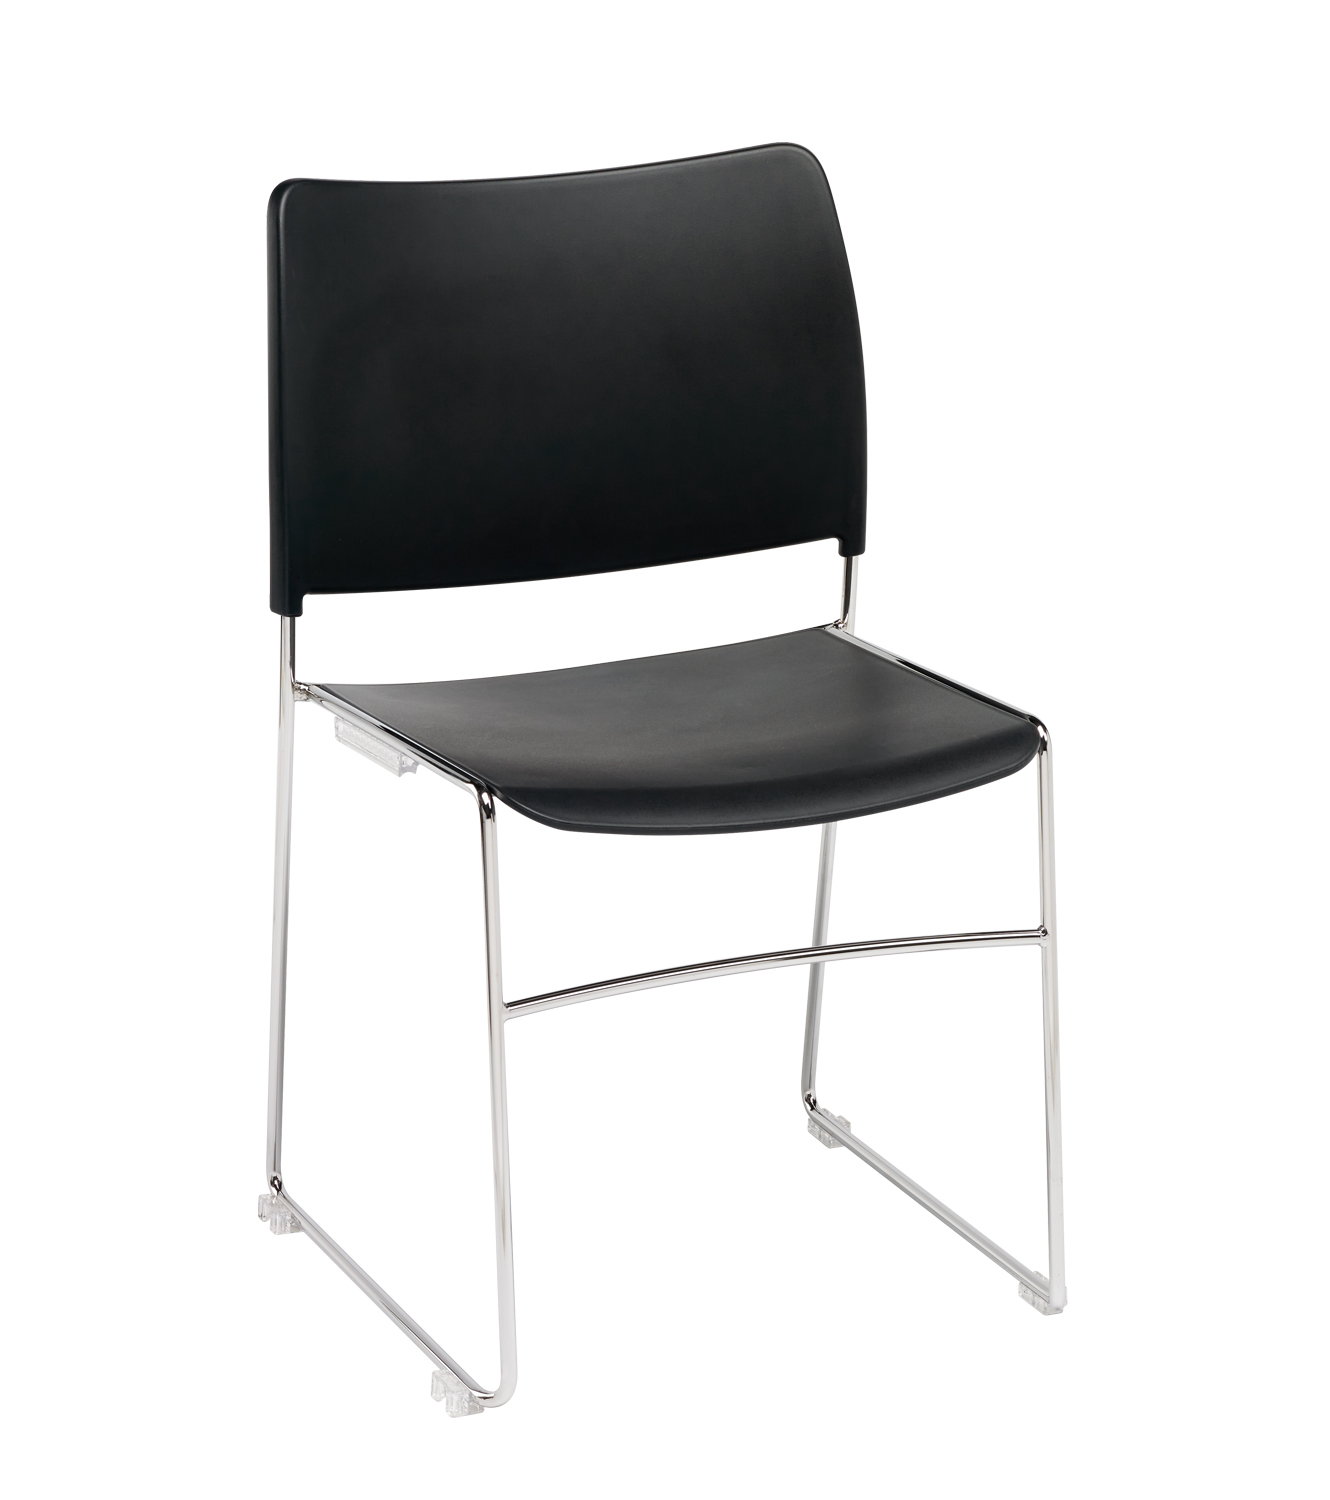 Modius-Black-Plastic-Stacking-Meeting-Chair-Chrome-Steel-Frame